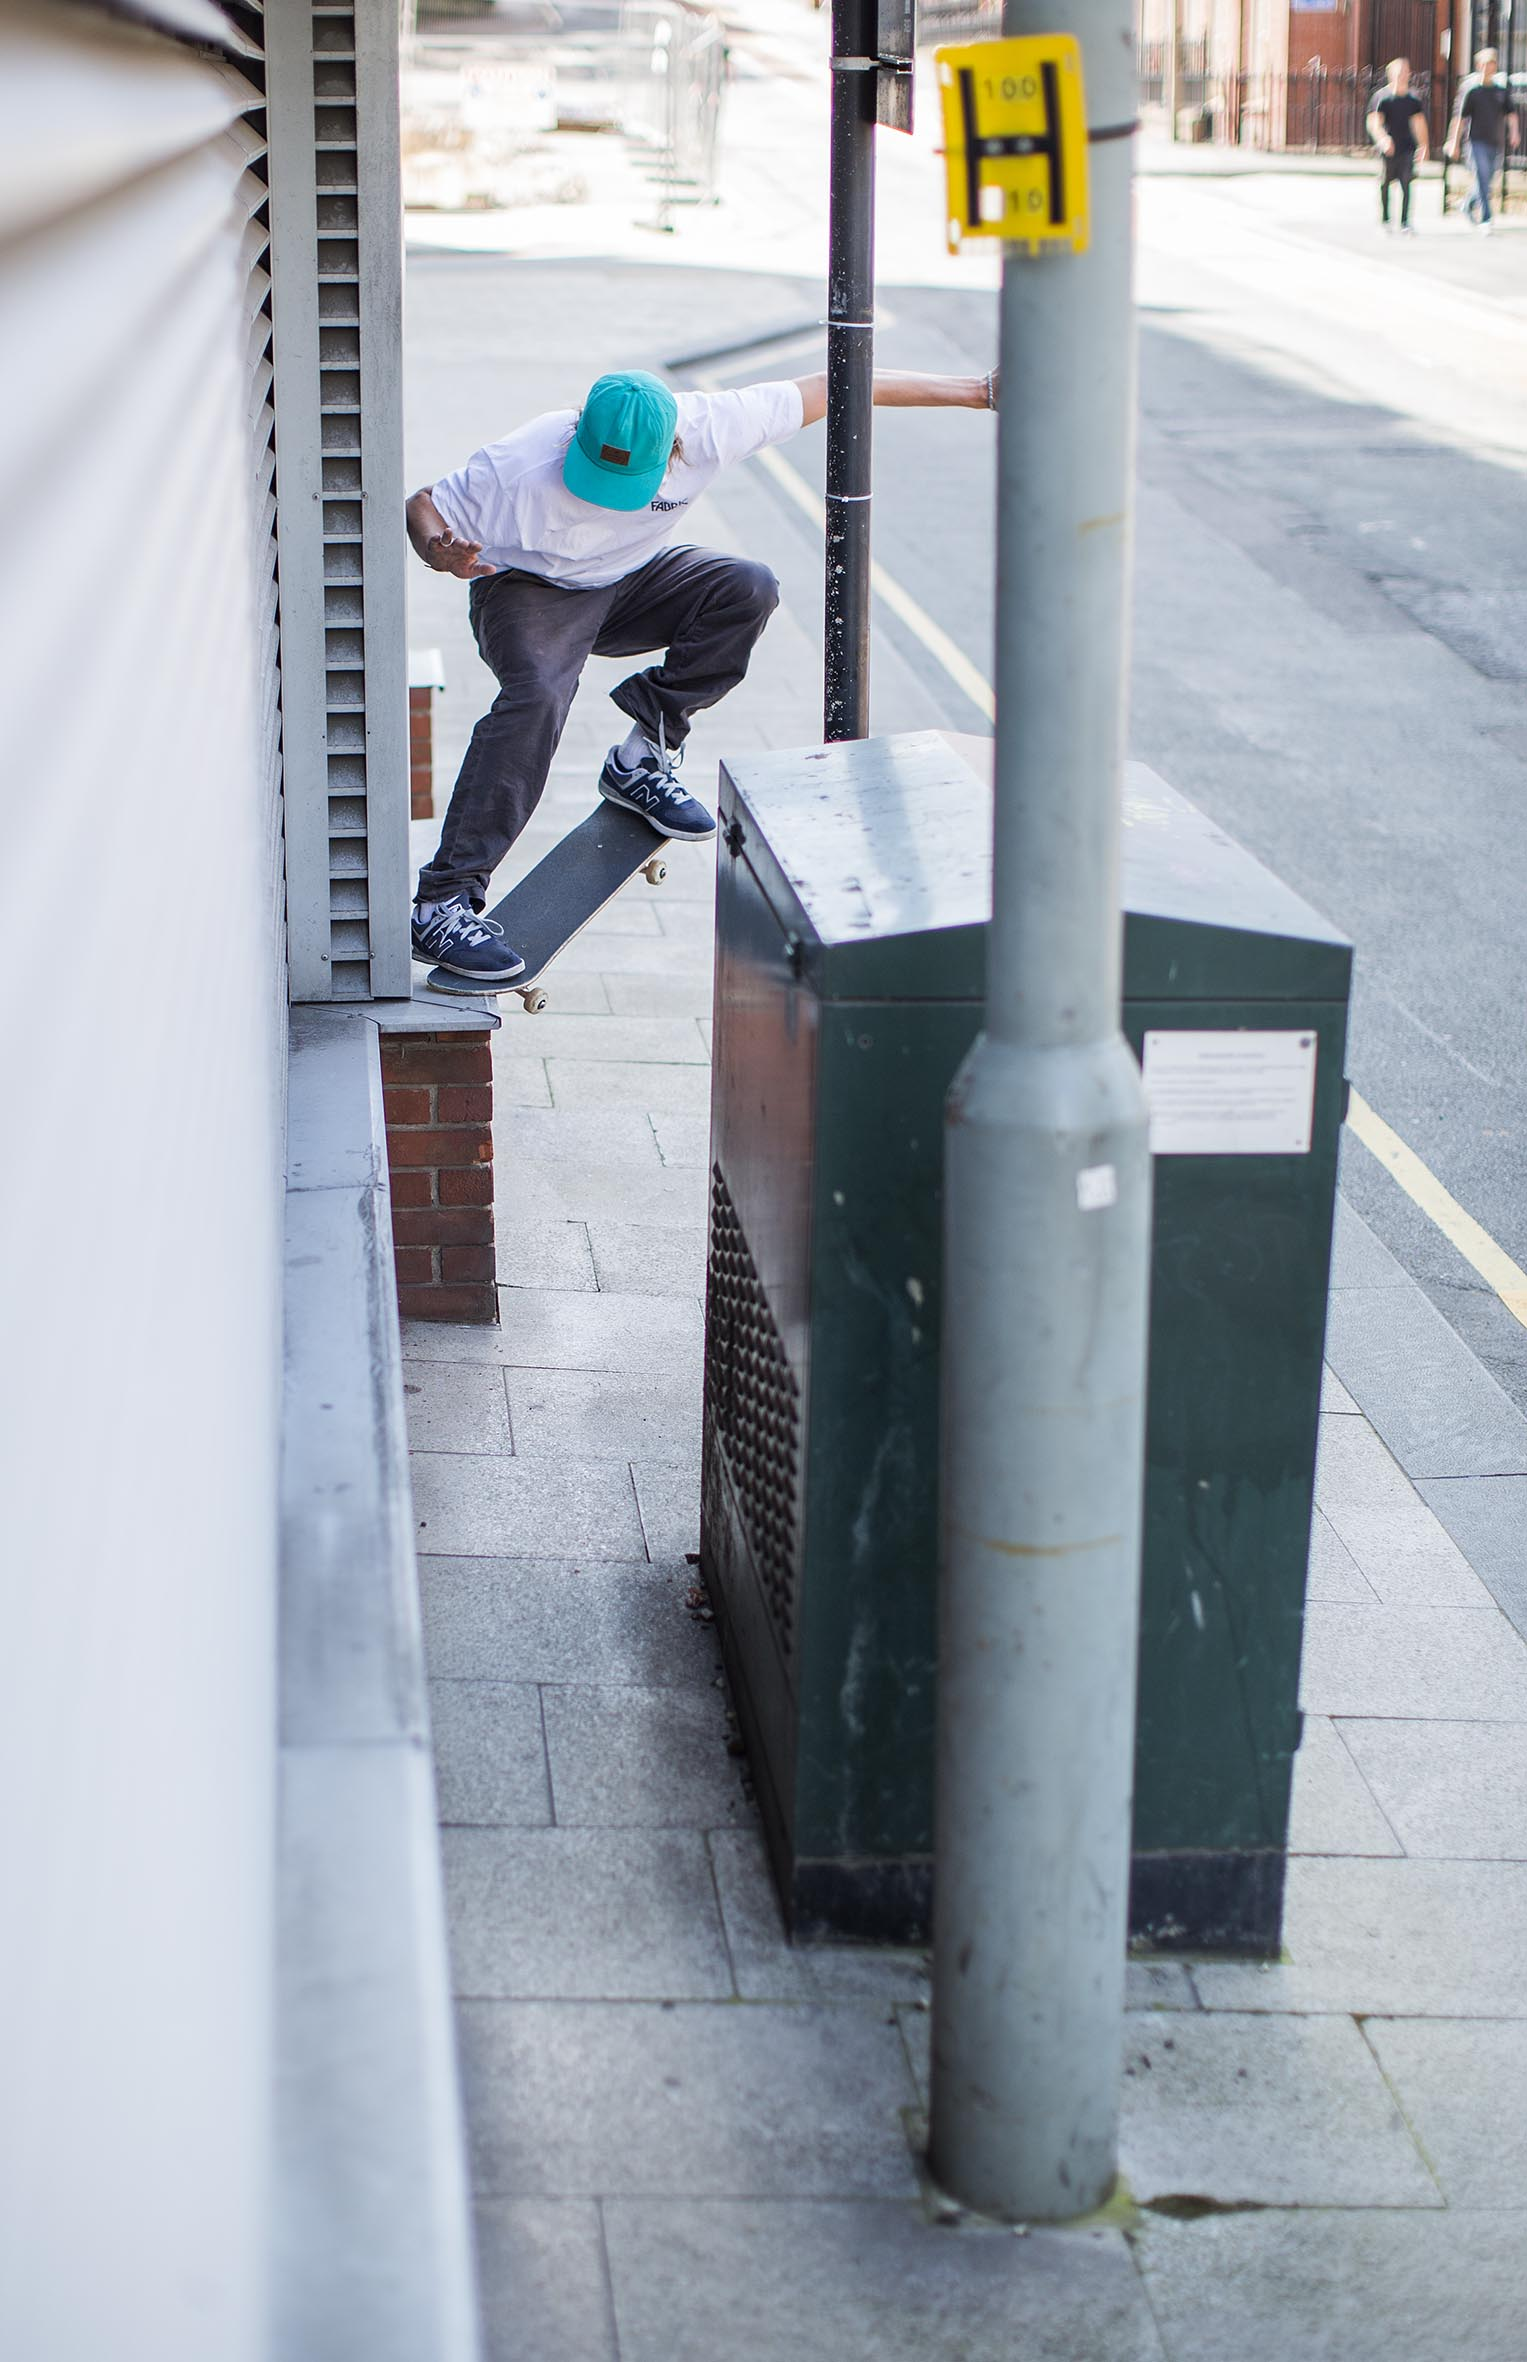 Mark Baines - crook to tight landing